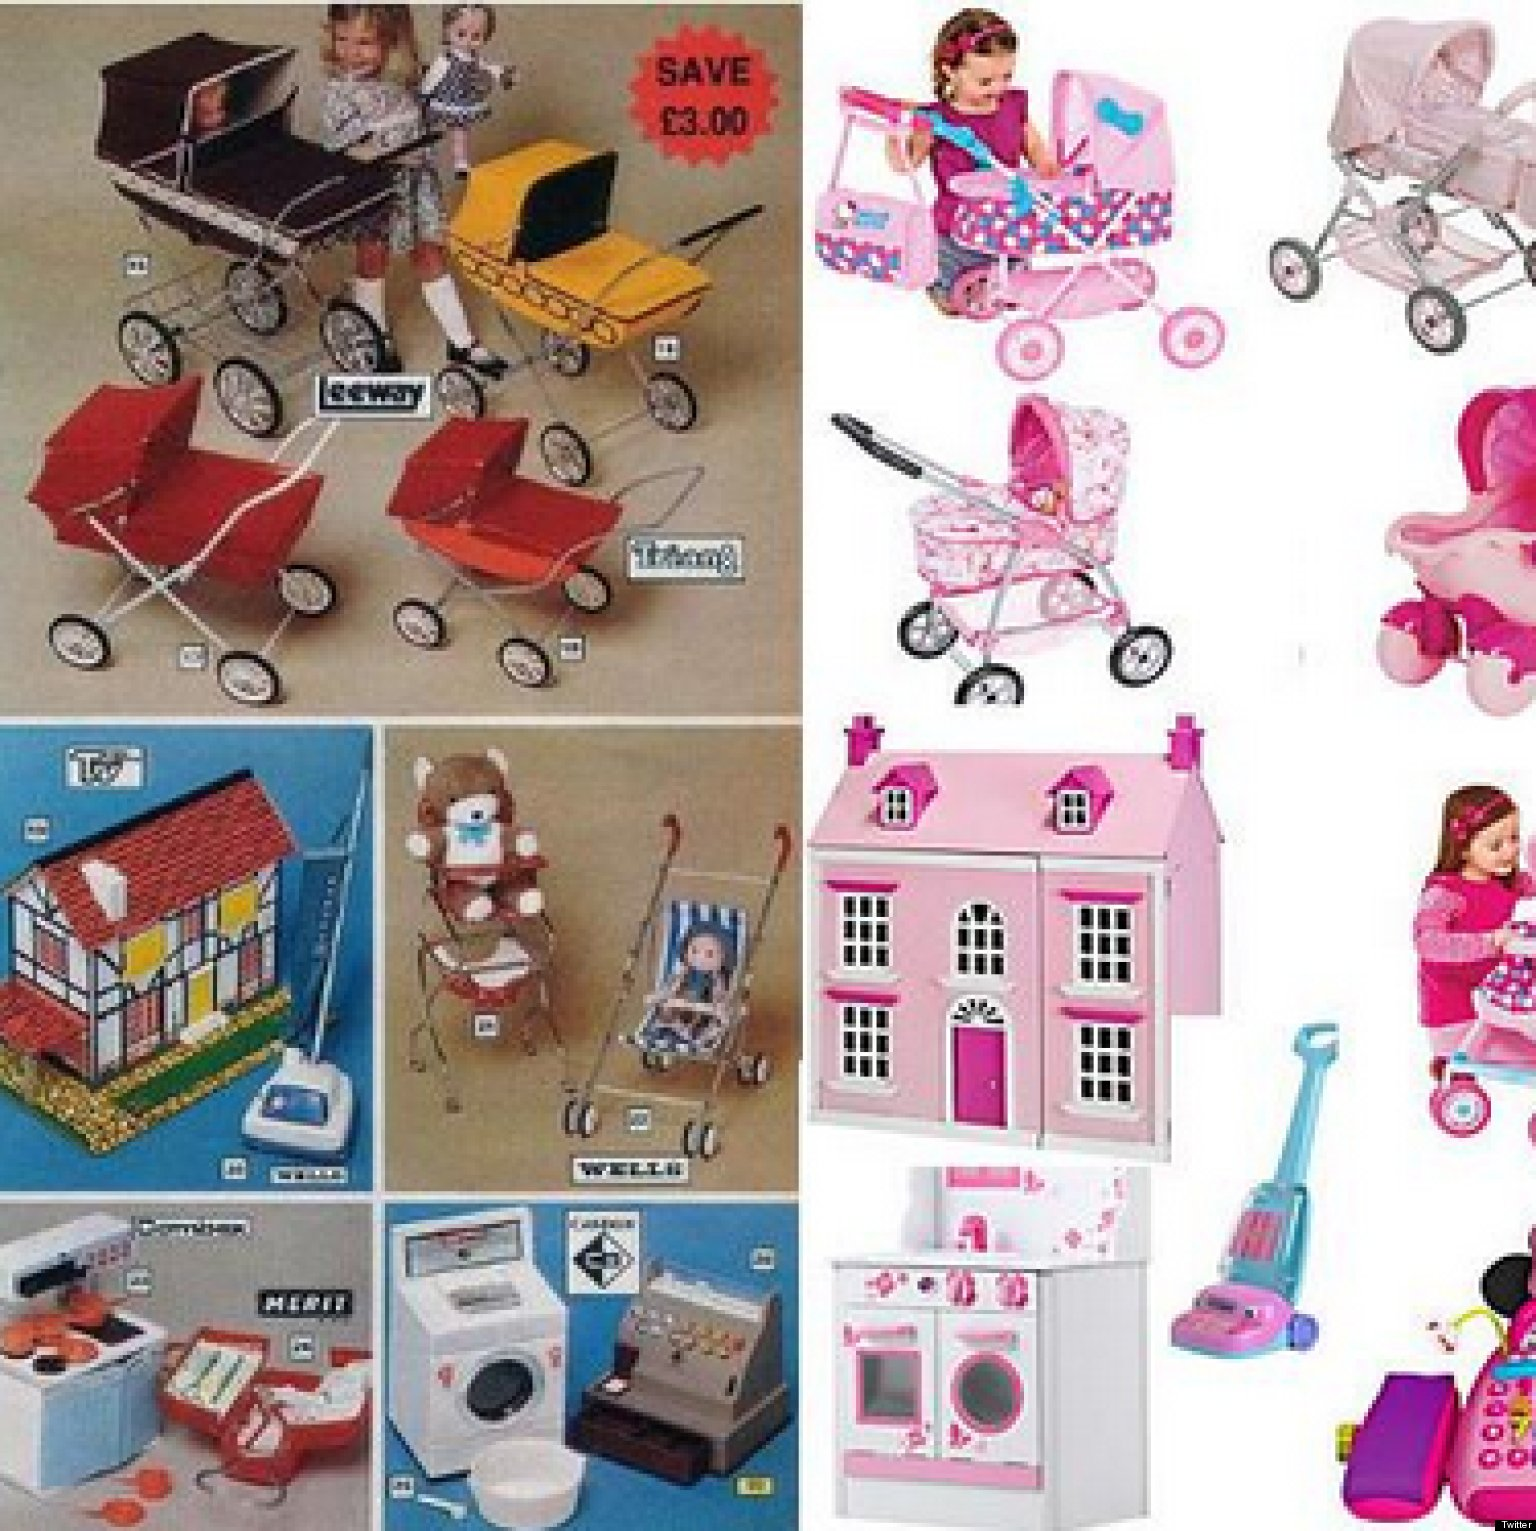 Let Toys Be Toys pares 1970s Toy Catalogue To Toy Marketing